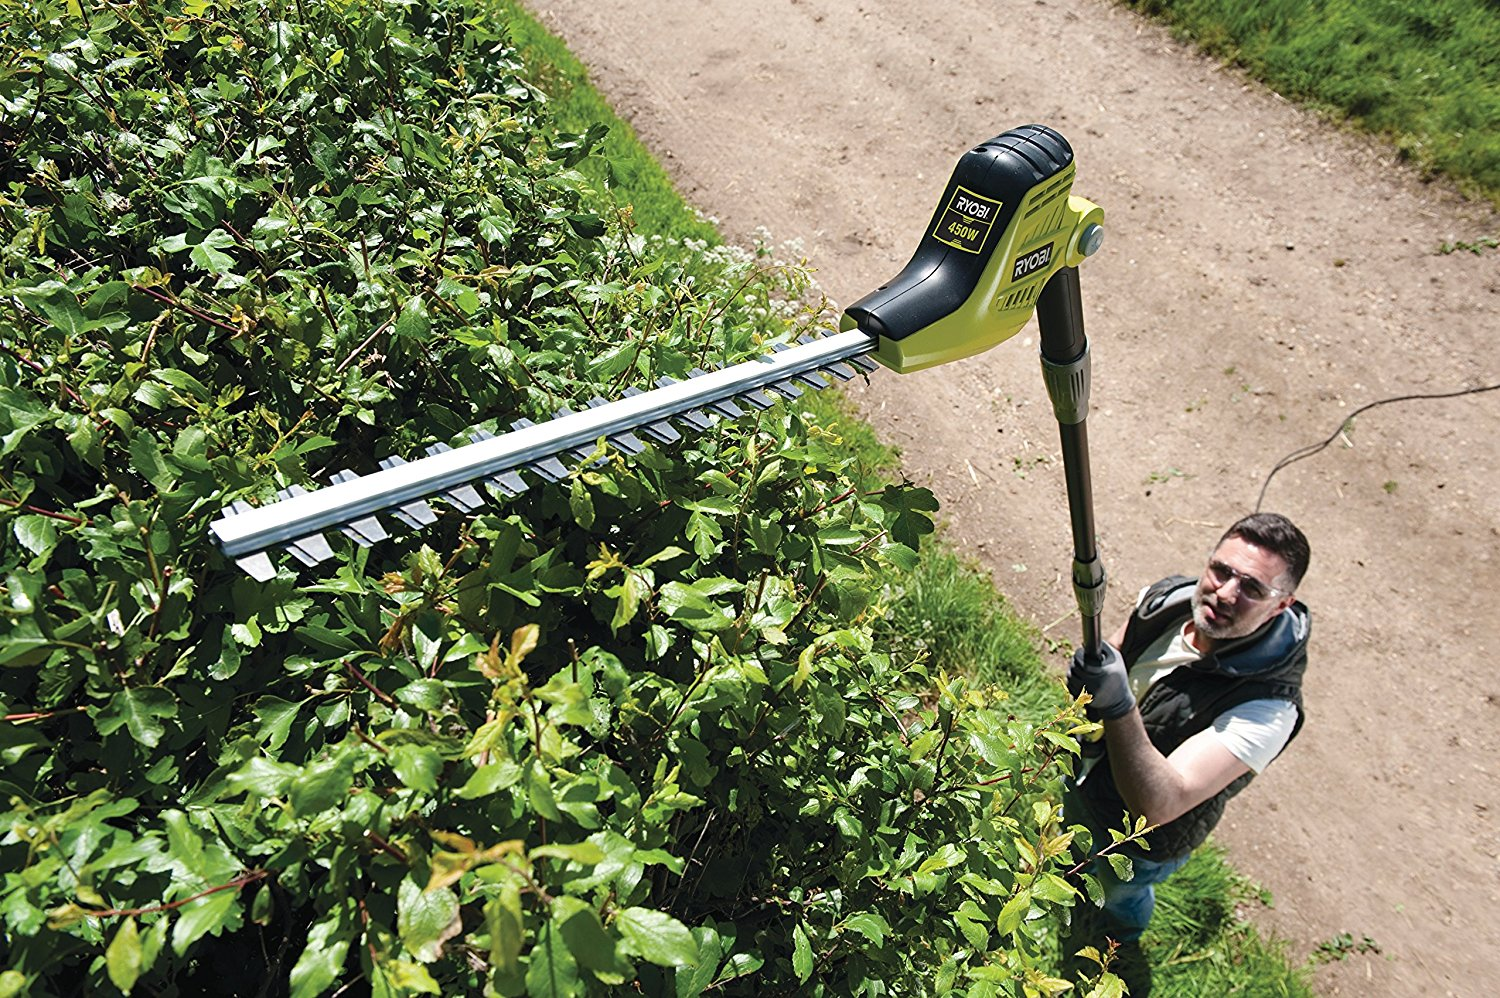 Ryobi Pole Hedge Trimmer In Action